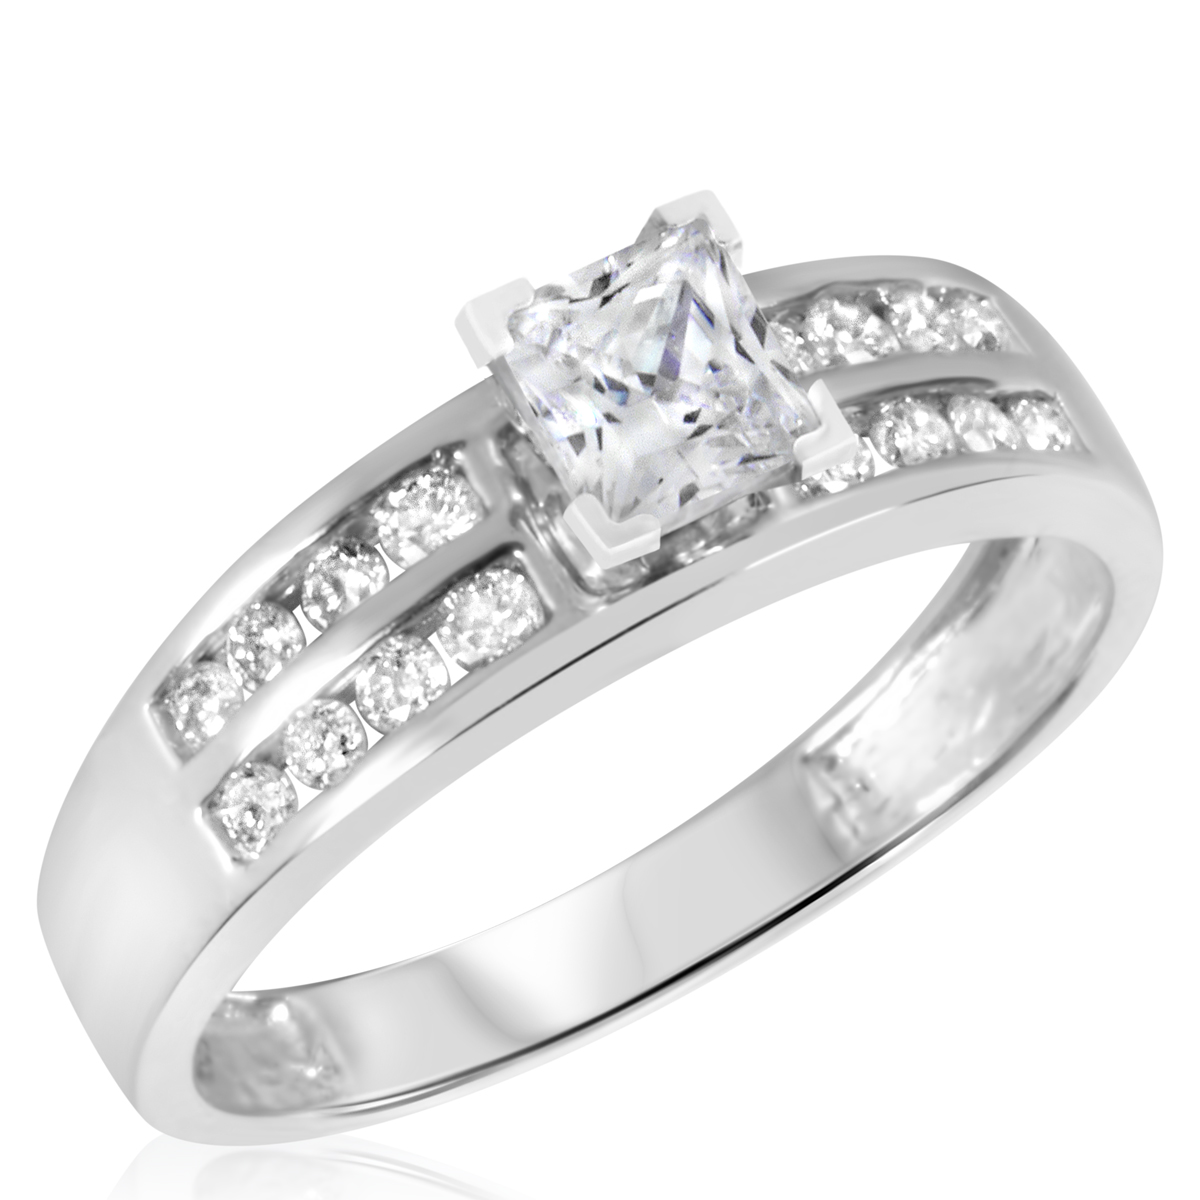 7/8 CT. T.W. Diamond Ladies Engagement Ring 14K White Gold- Size 8